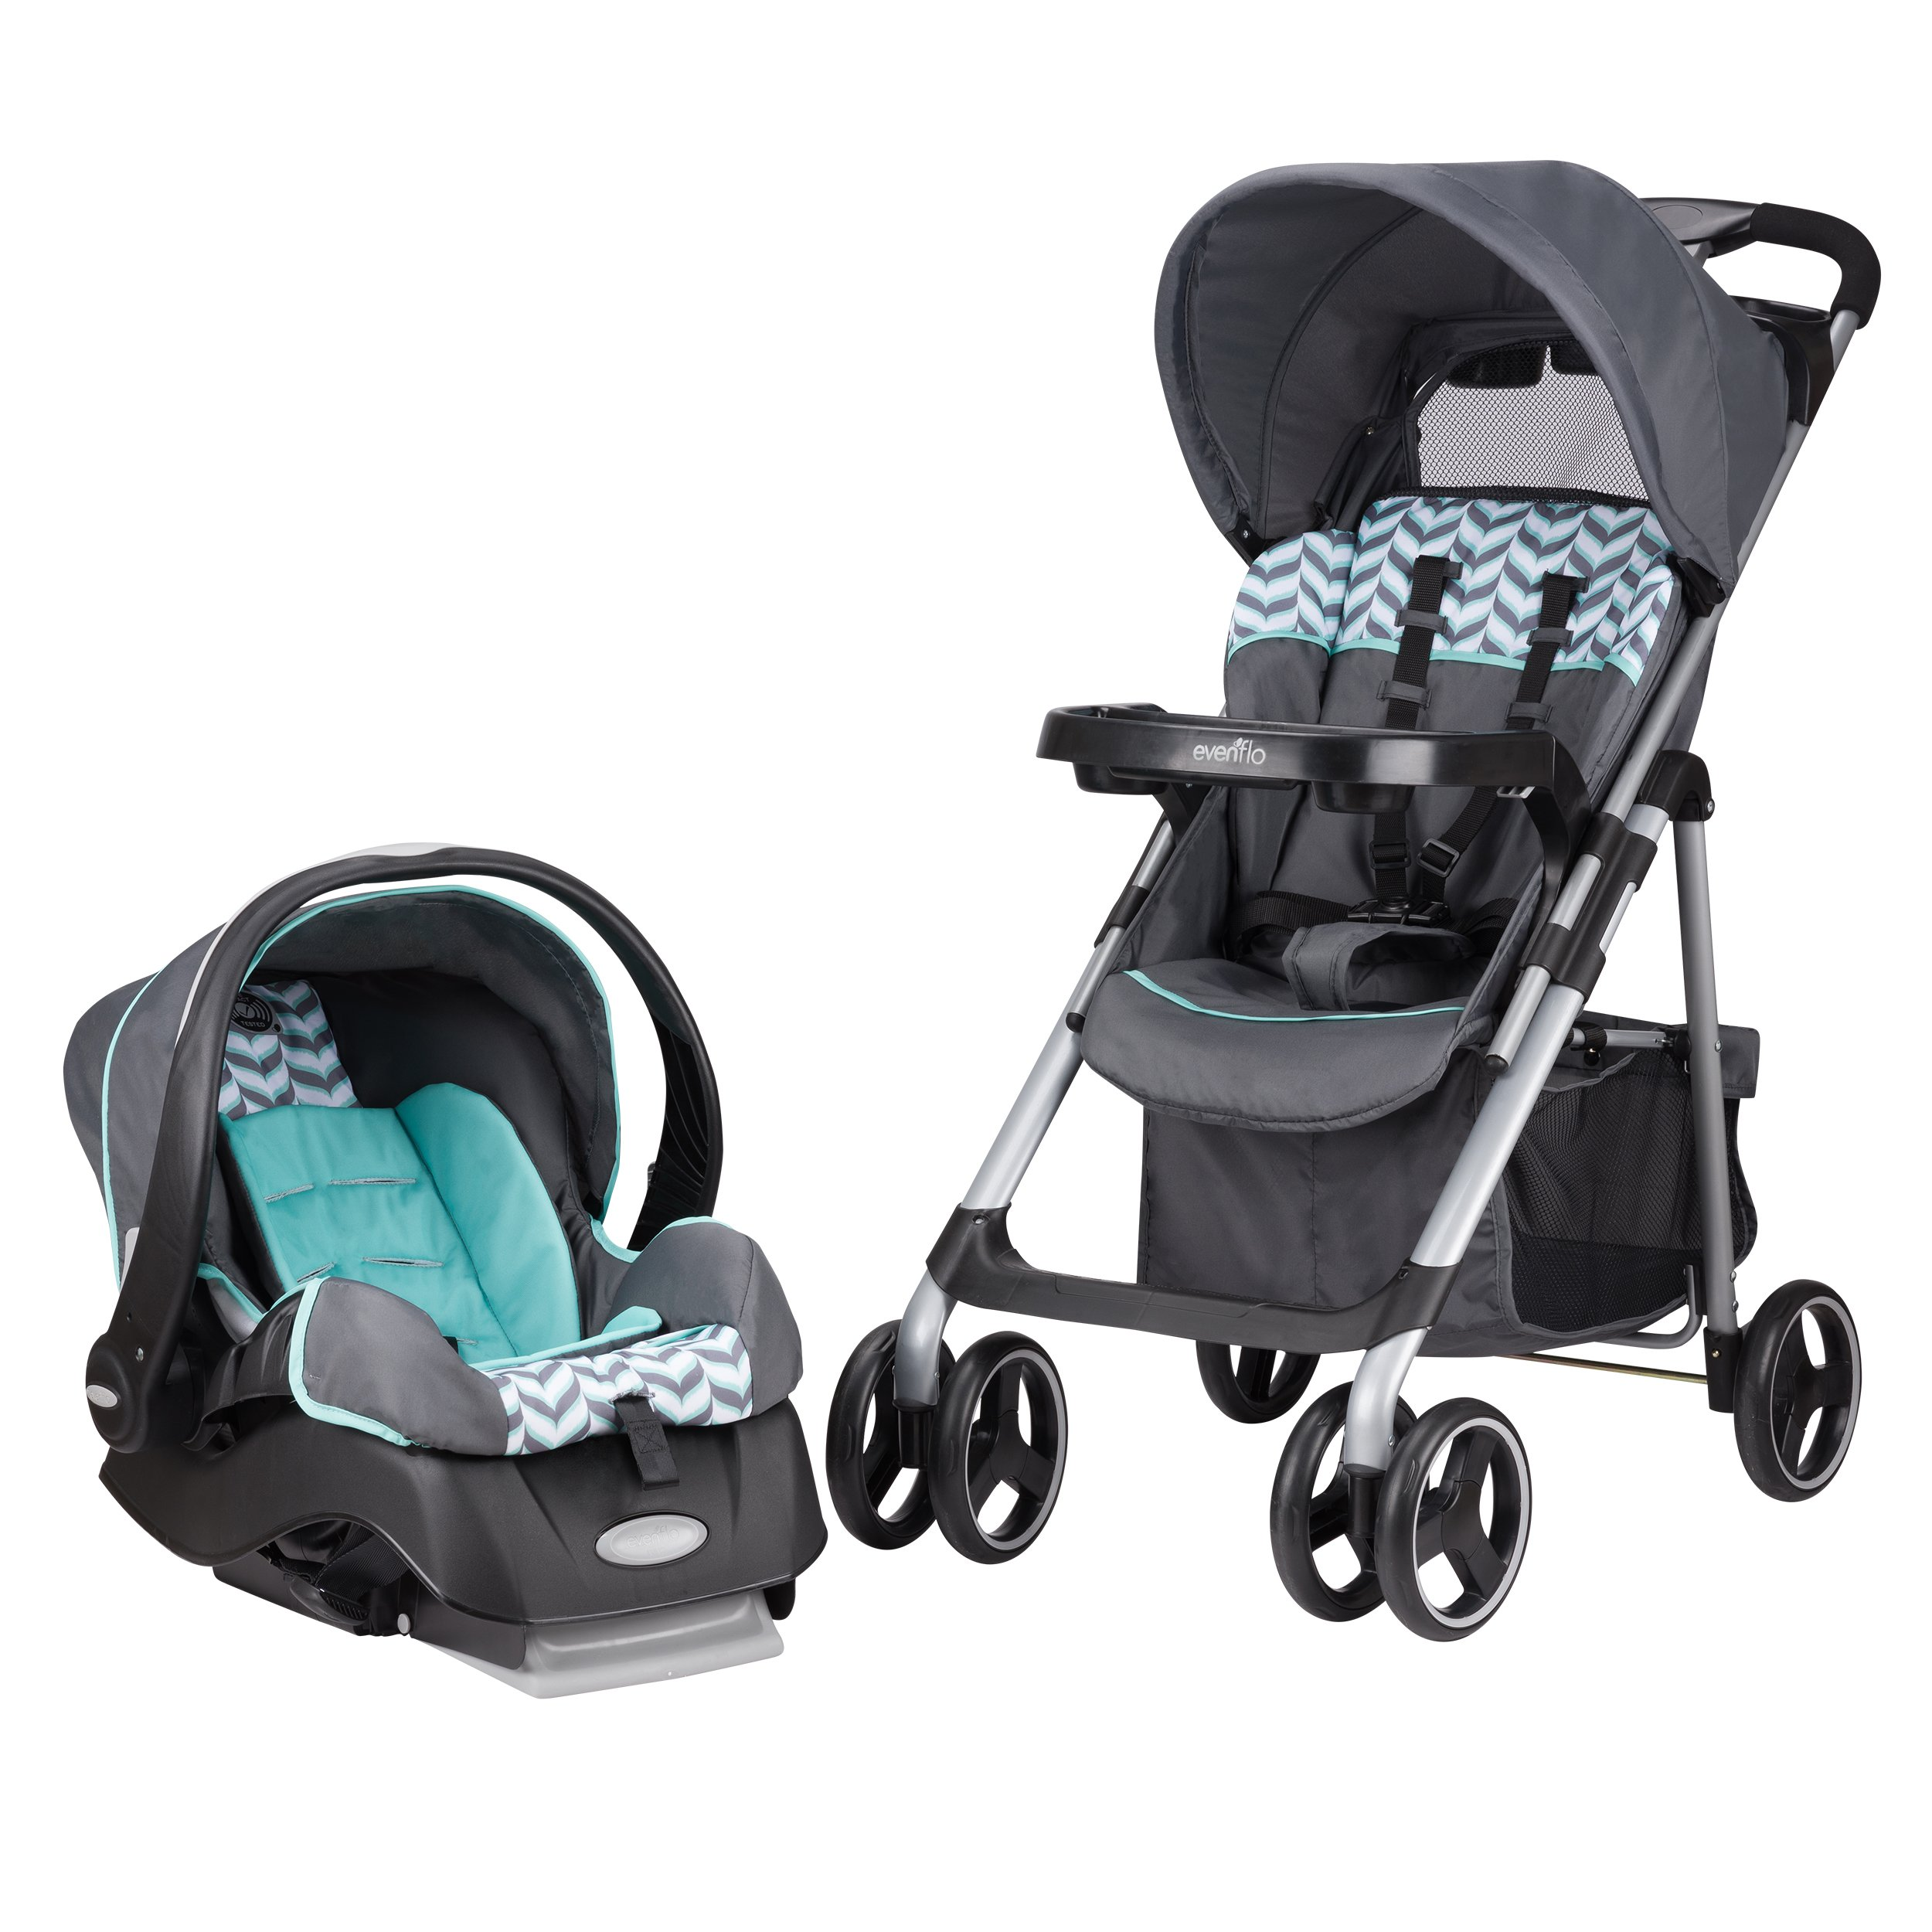 Evenflo Vive Travel System with Embrace, Spearmint Spree by Evenflo (Image #17)